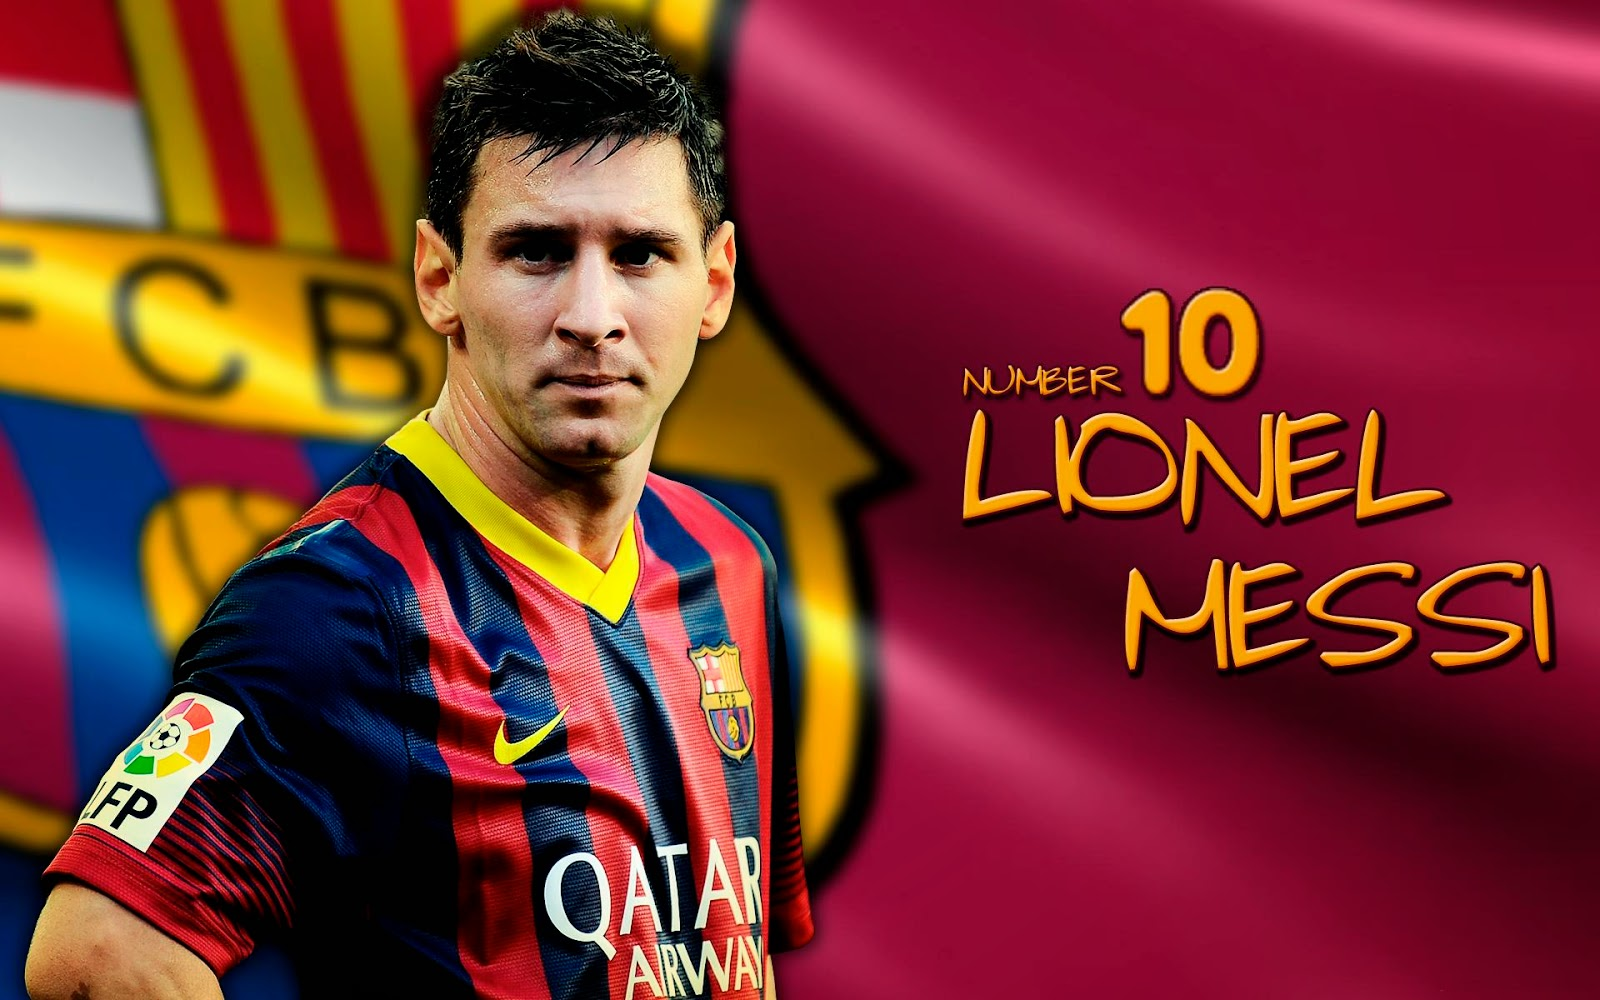 photos de lionel messi